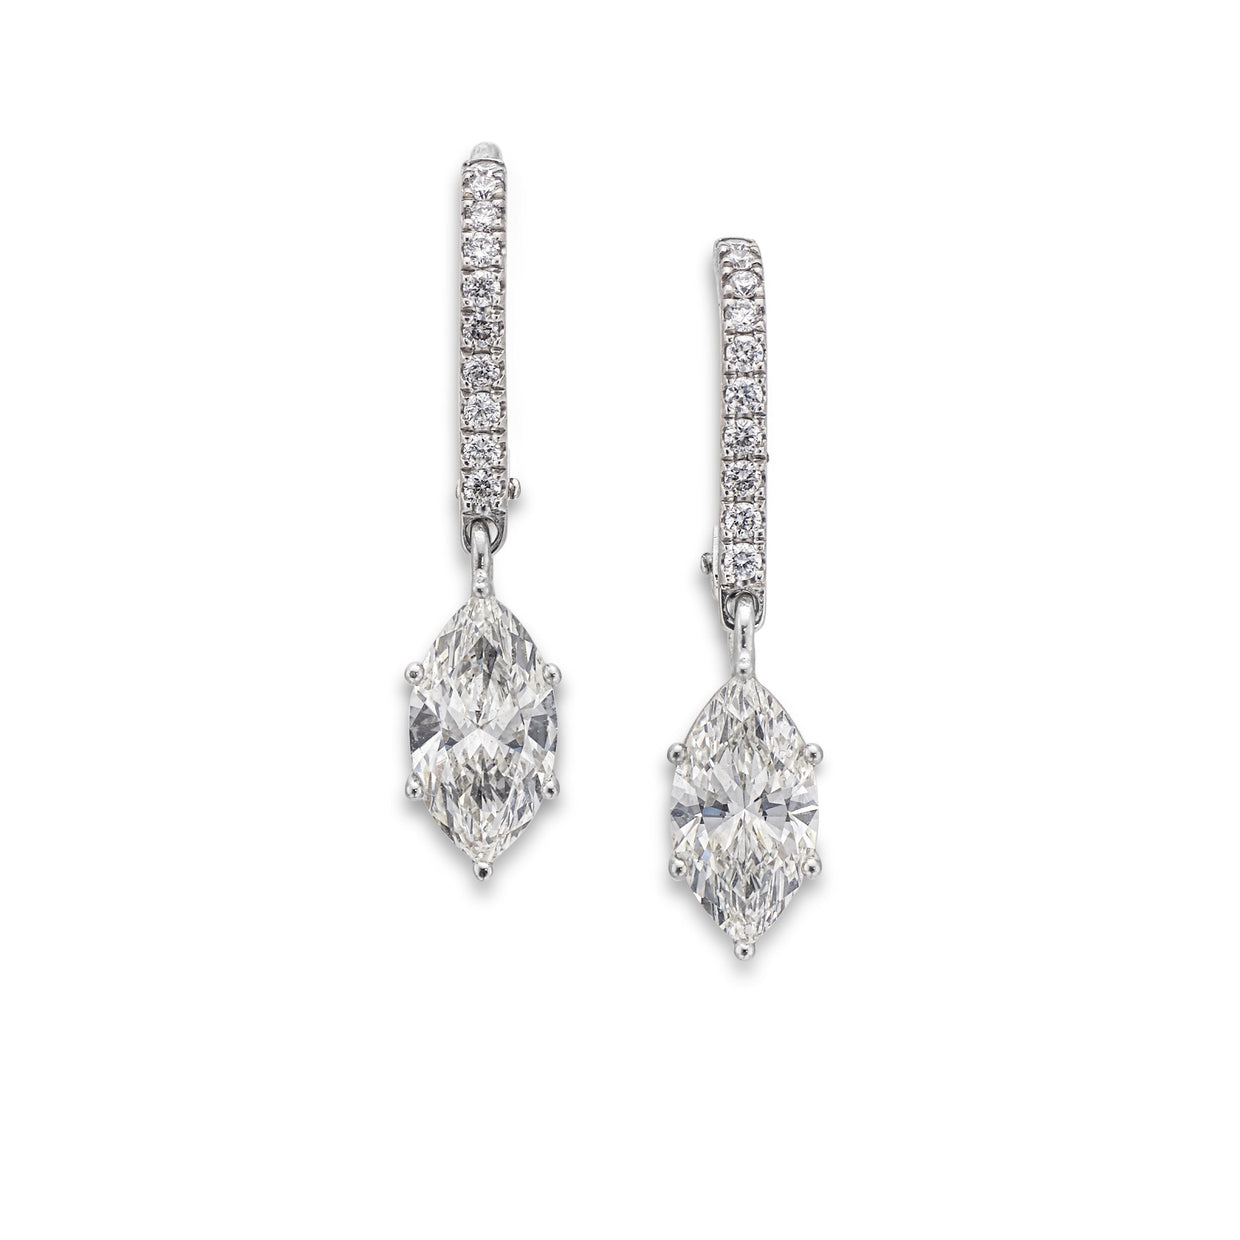 Marquise-Cut Diamond Drop Earrings in 18ct White Gold - Hamilton & Inches